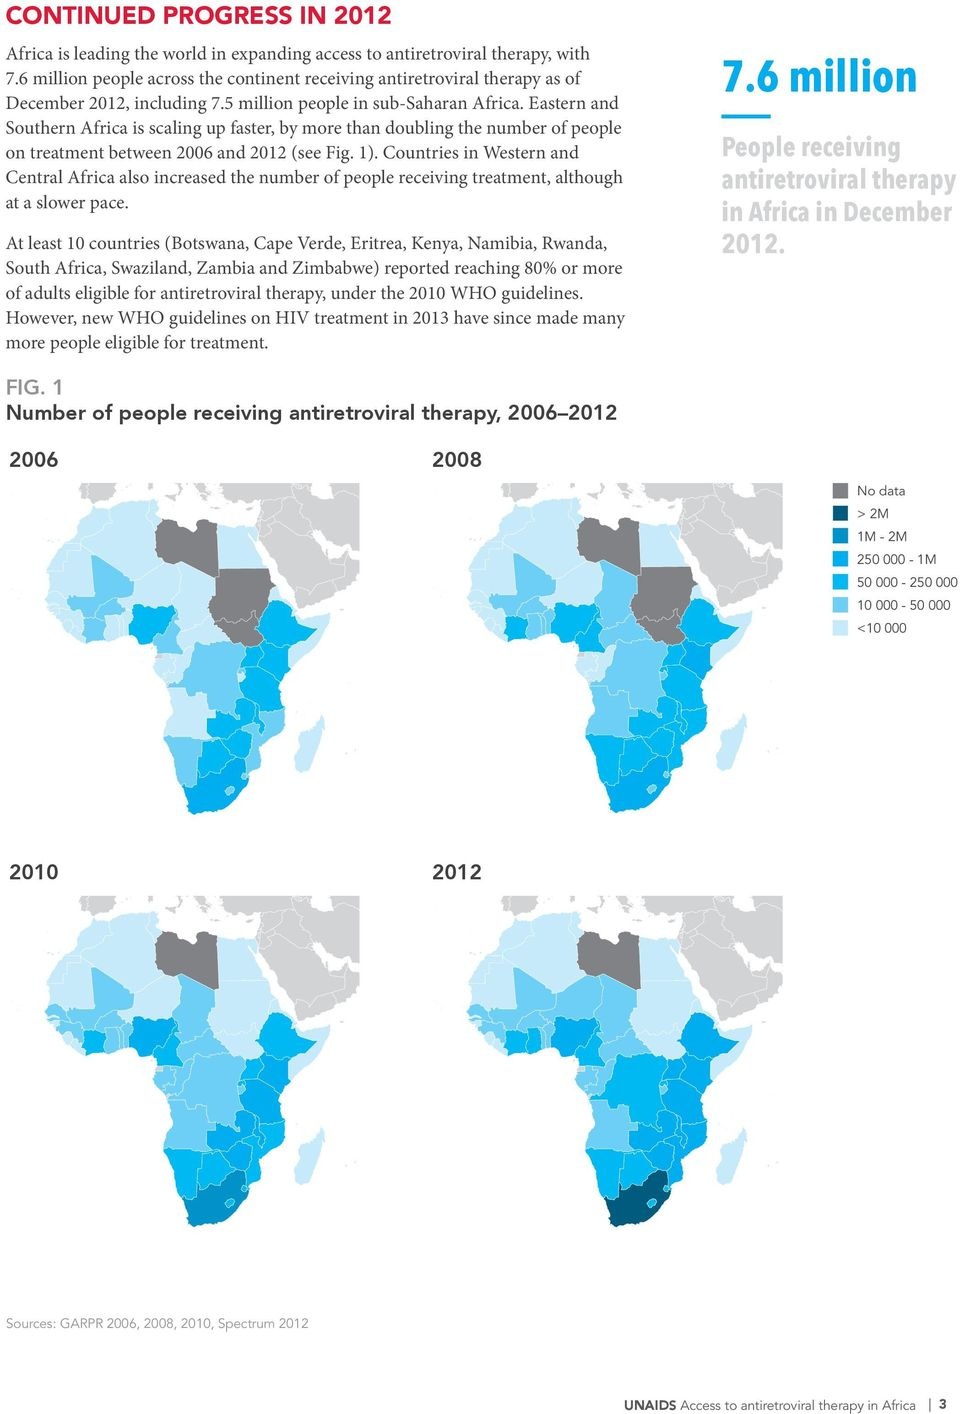 Eastern and Southern Africa is scaling up faster, by more than doubling the number of people on treatment between 2006 and 2012 (see Fig. 1).